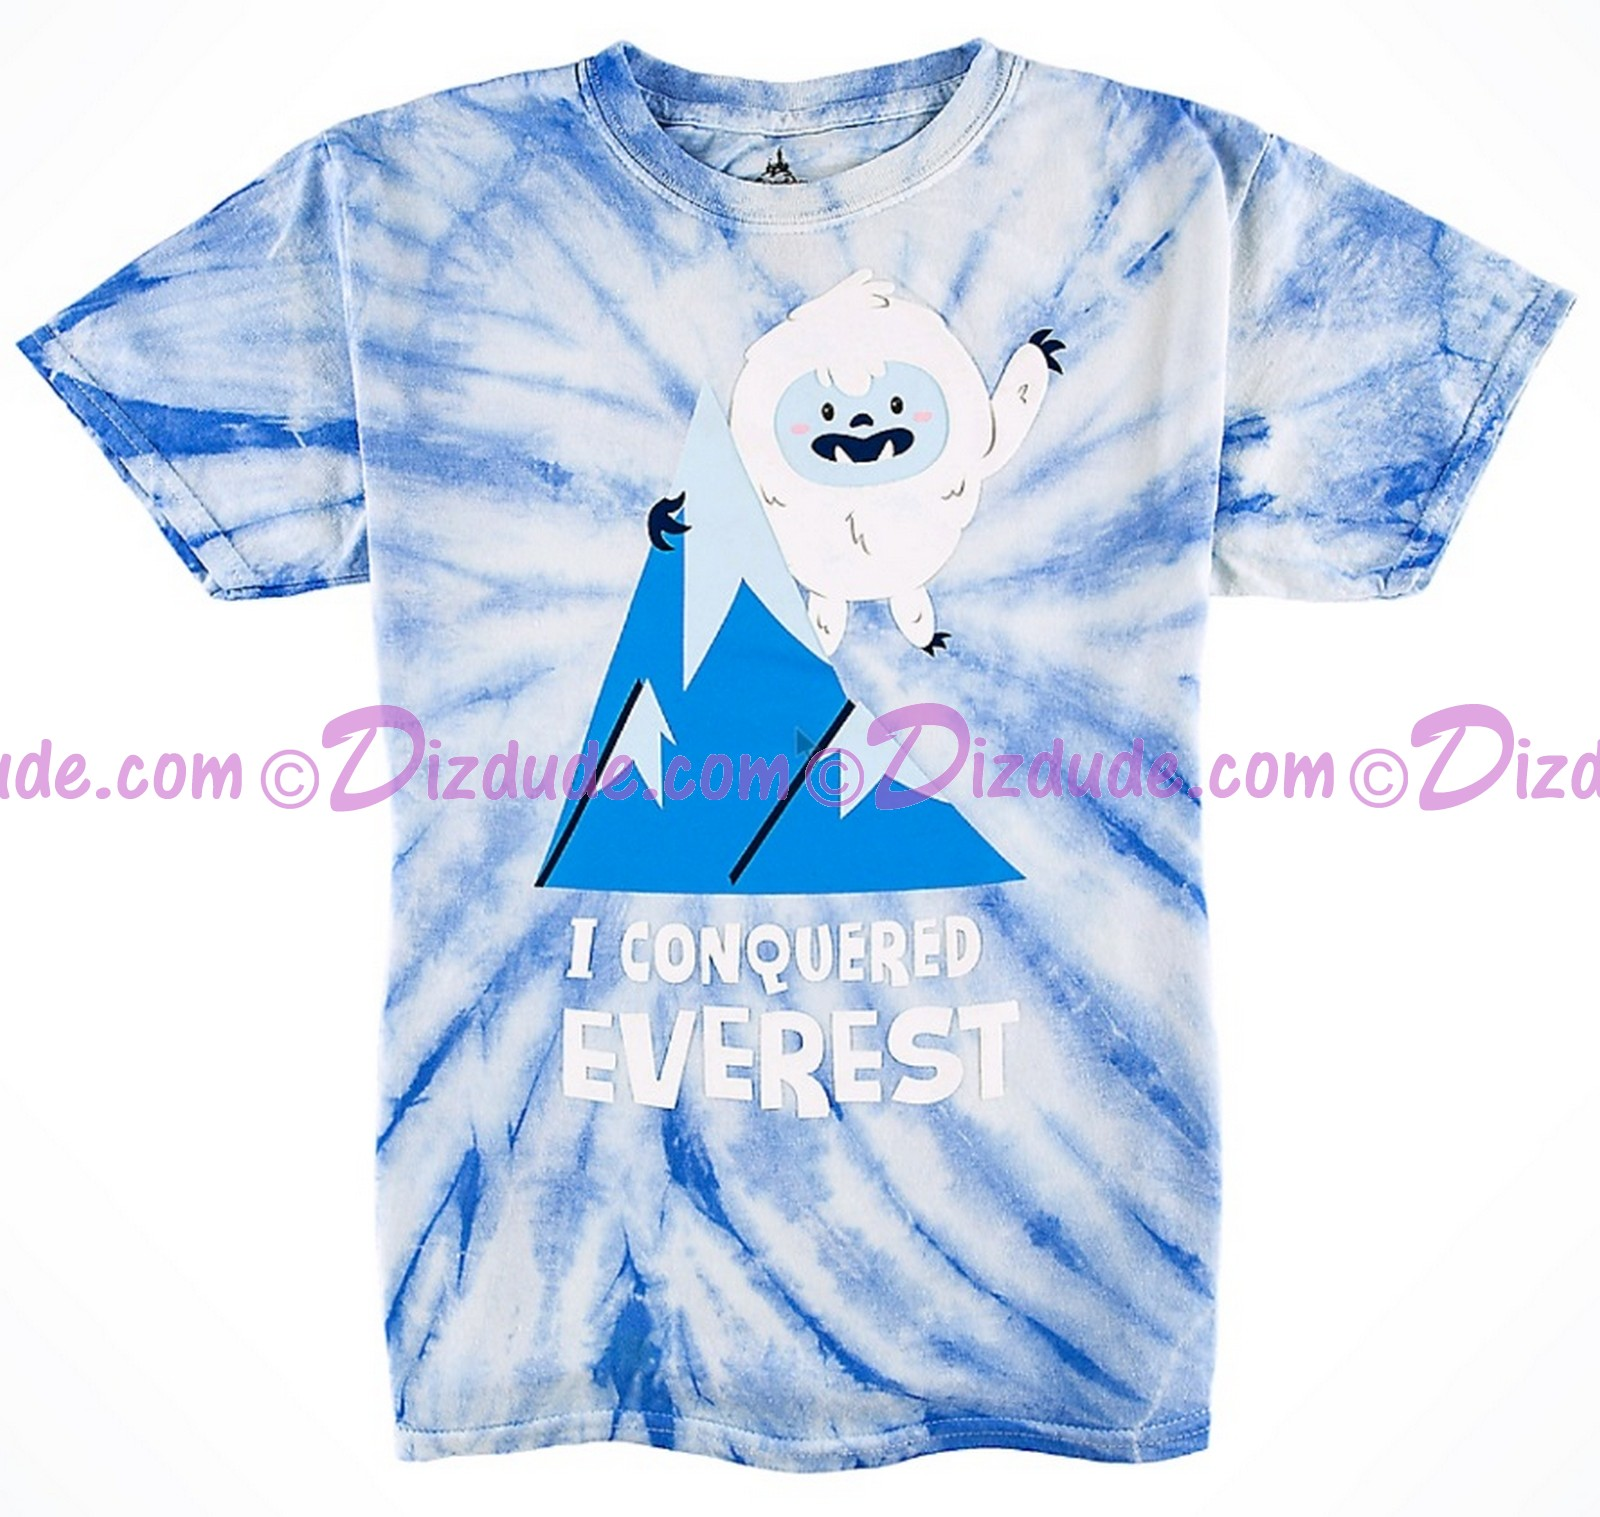 I Conquered Expedition Everest Tie-Dyed Youth T-Shirt (Tee, Tshirt or T shirt) ~ Disney Animal Kingdom